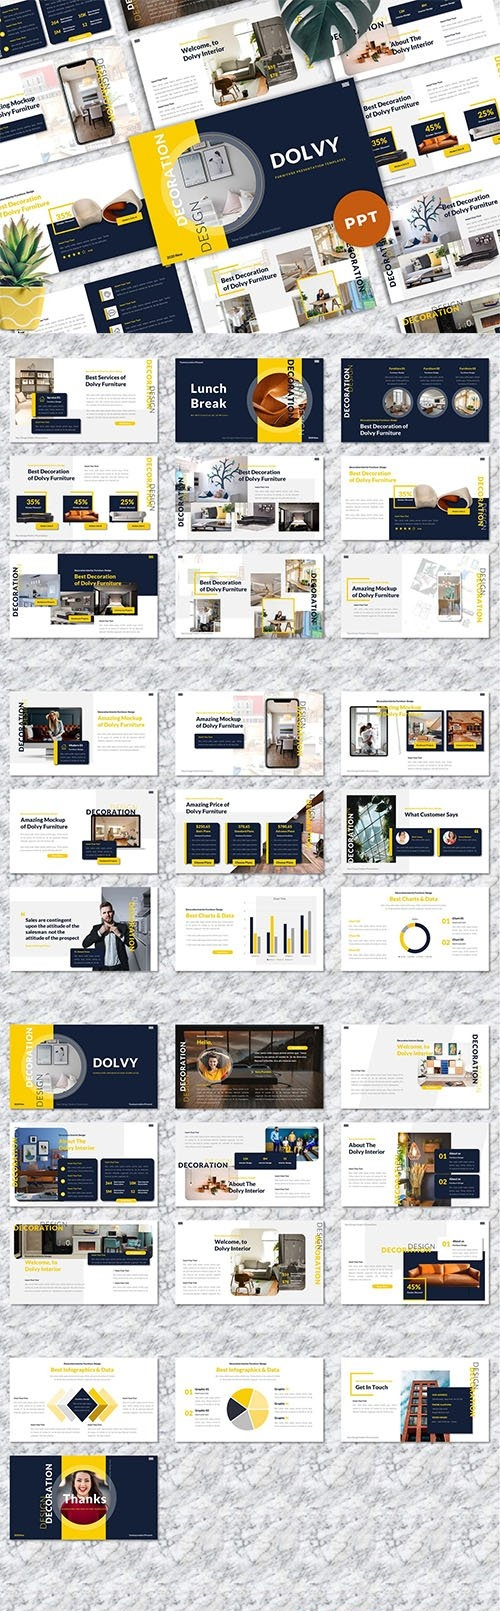 Dolvy - Furniture Powerpoint Templates